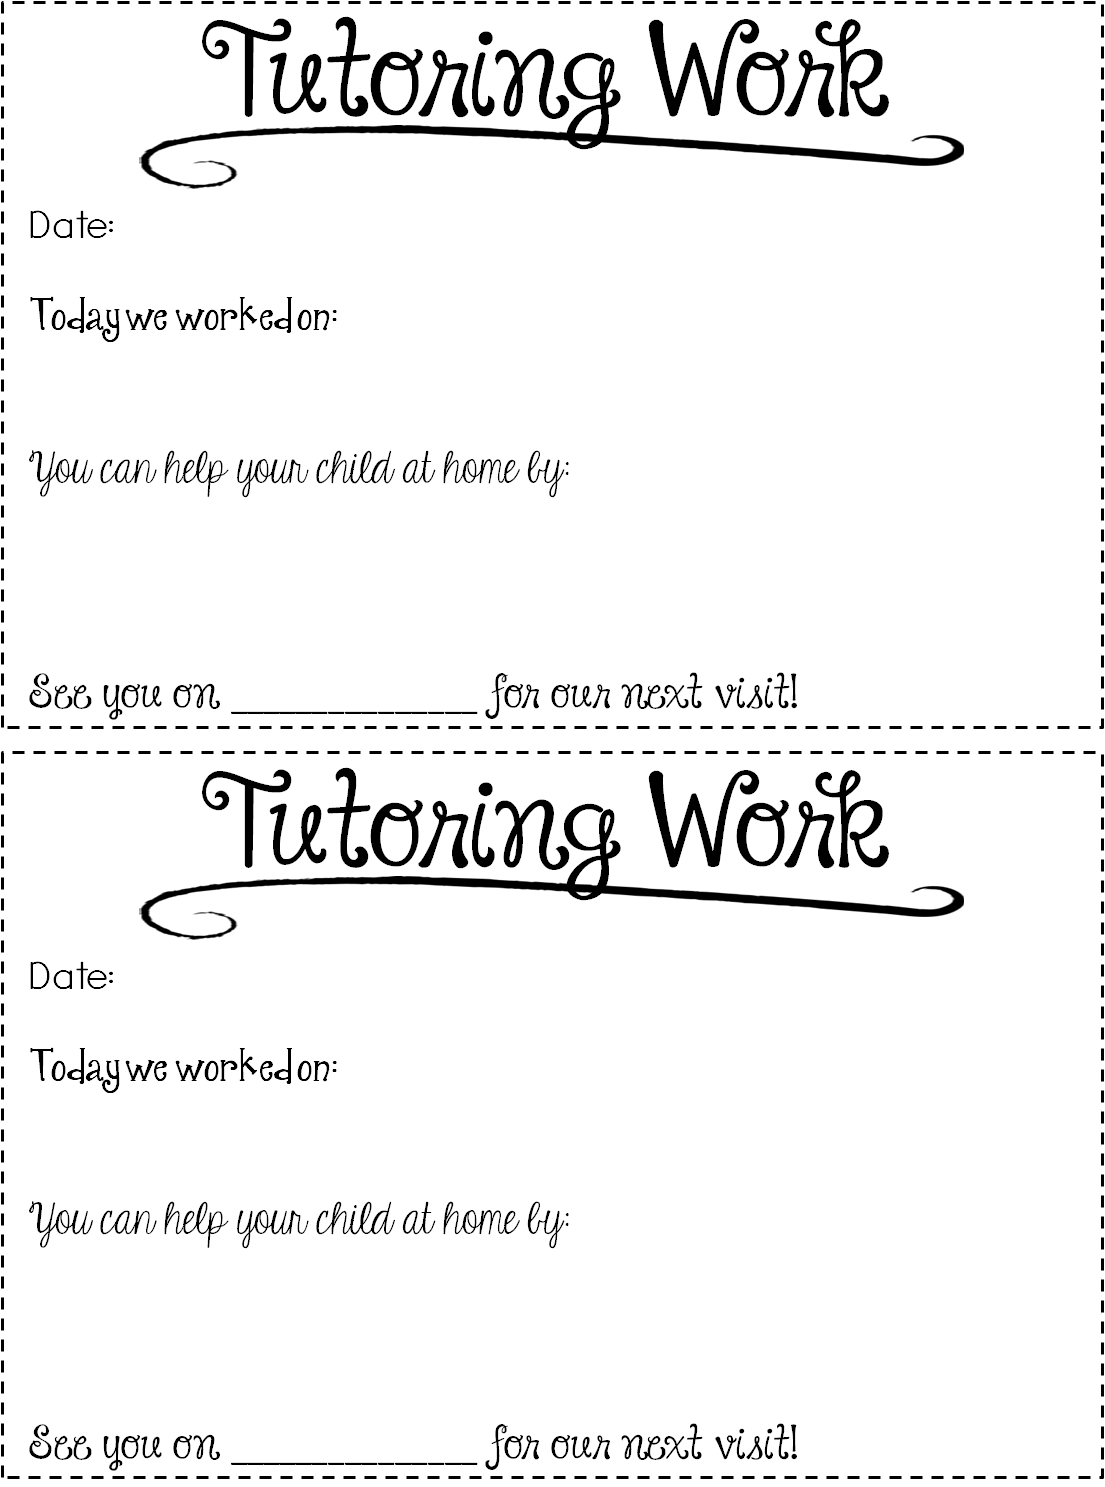 graphic regarding Free Printable Tutoring Forms referred to as Absolutely free Tutoring Types Guidelines! - Out of this World-wide Literacy